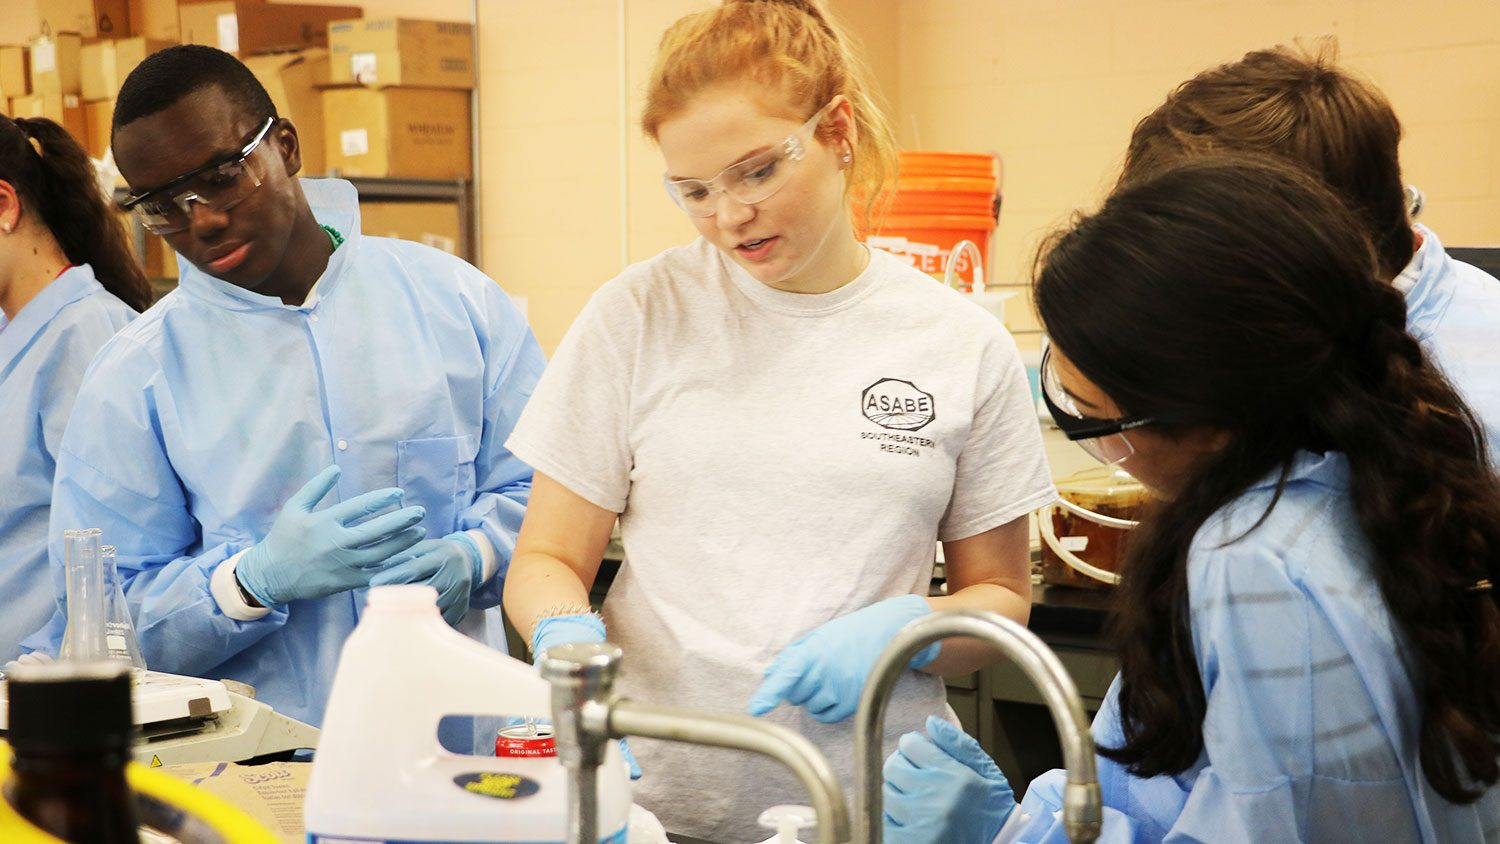 Female student working on an experiment with other students